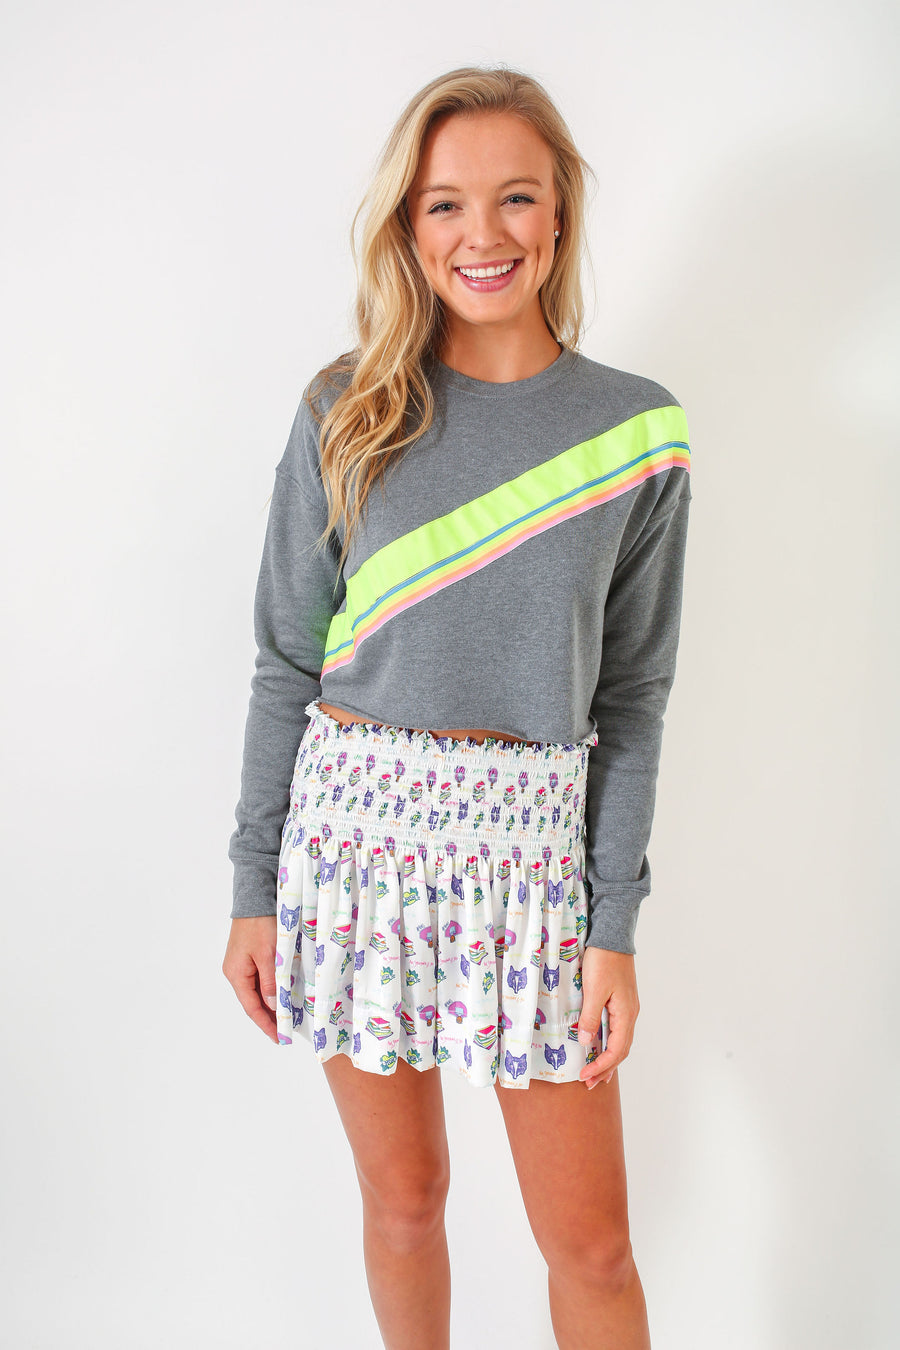 CROPPED SWEATSHIRT GREY/ NEON TRIM